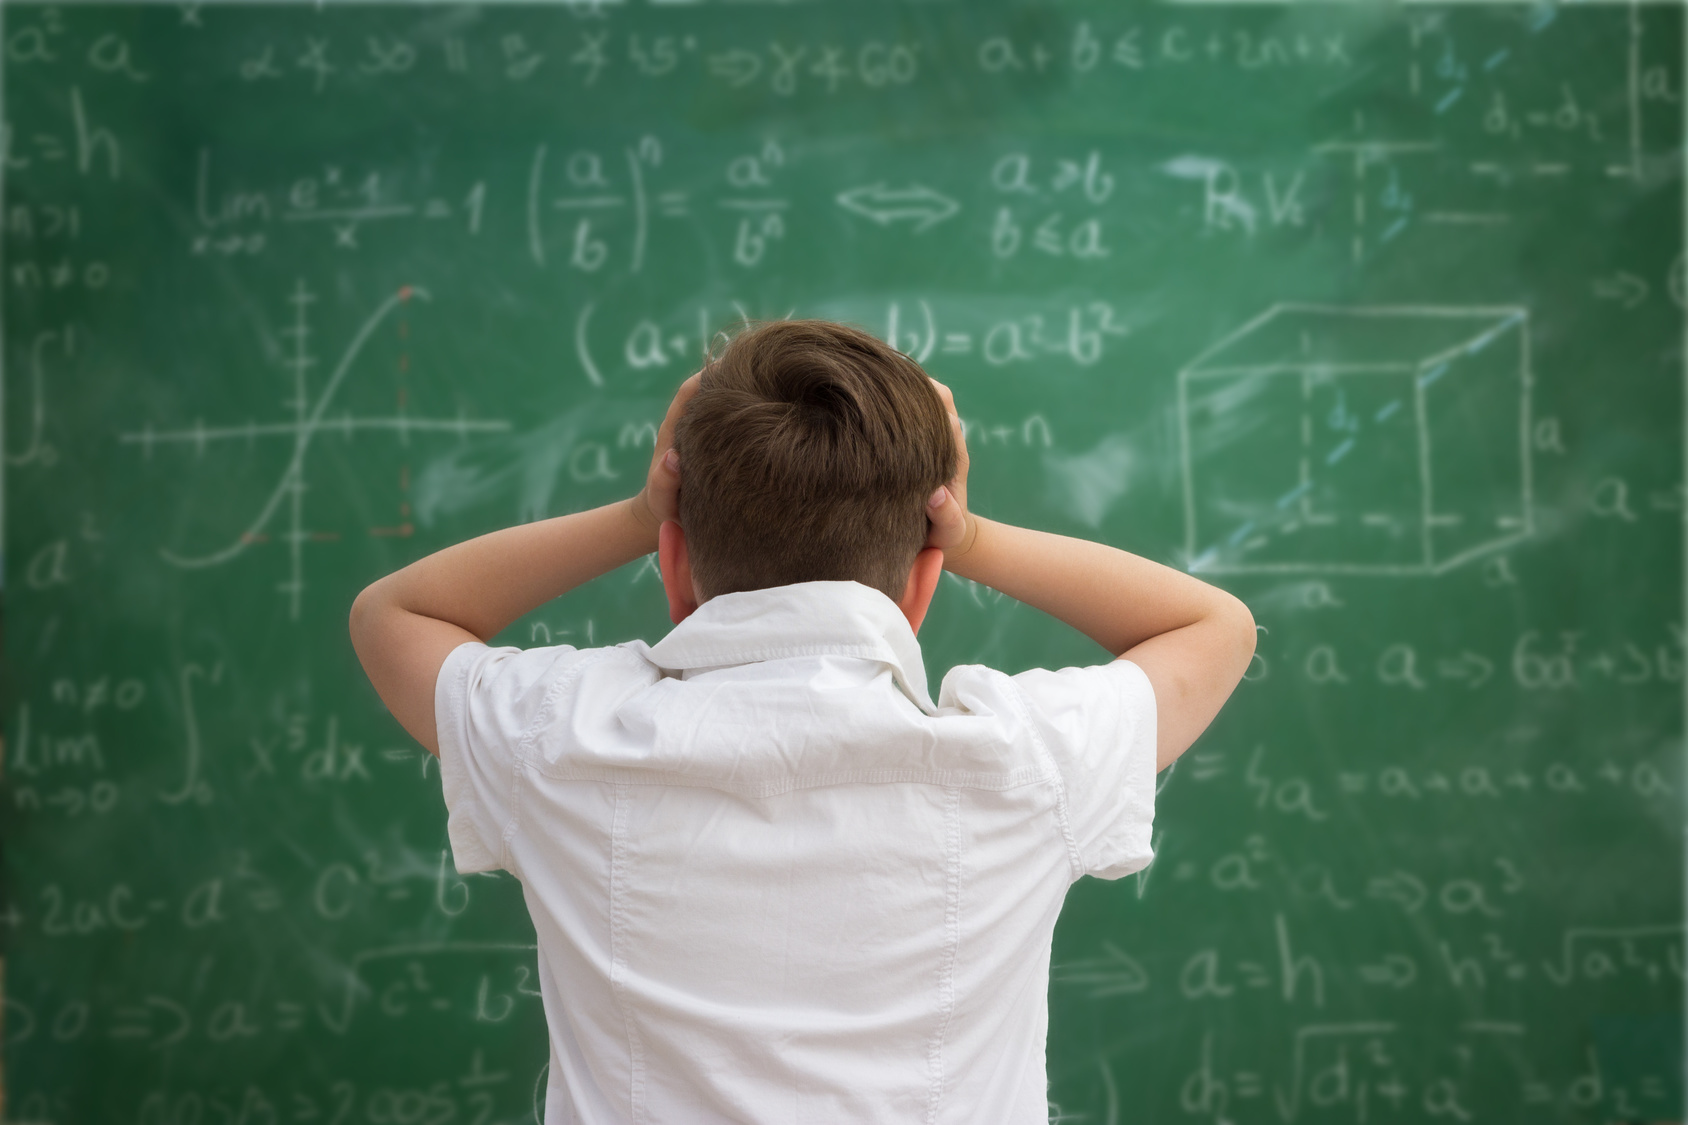 Schoolboy holding hands on his head, getting crazy and looks at the blackboard with formulas